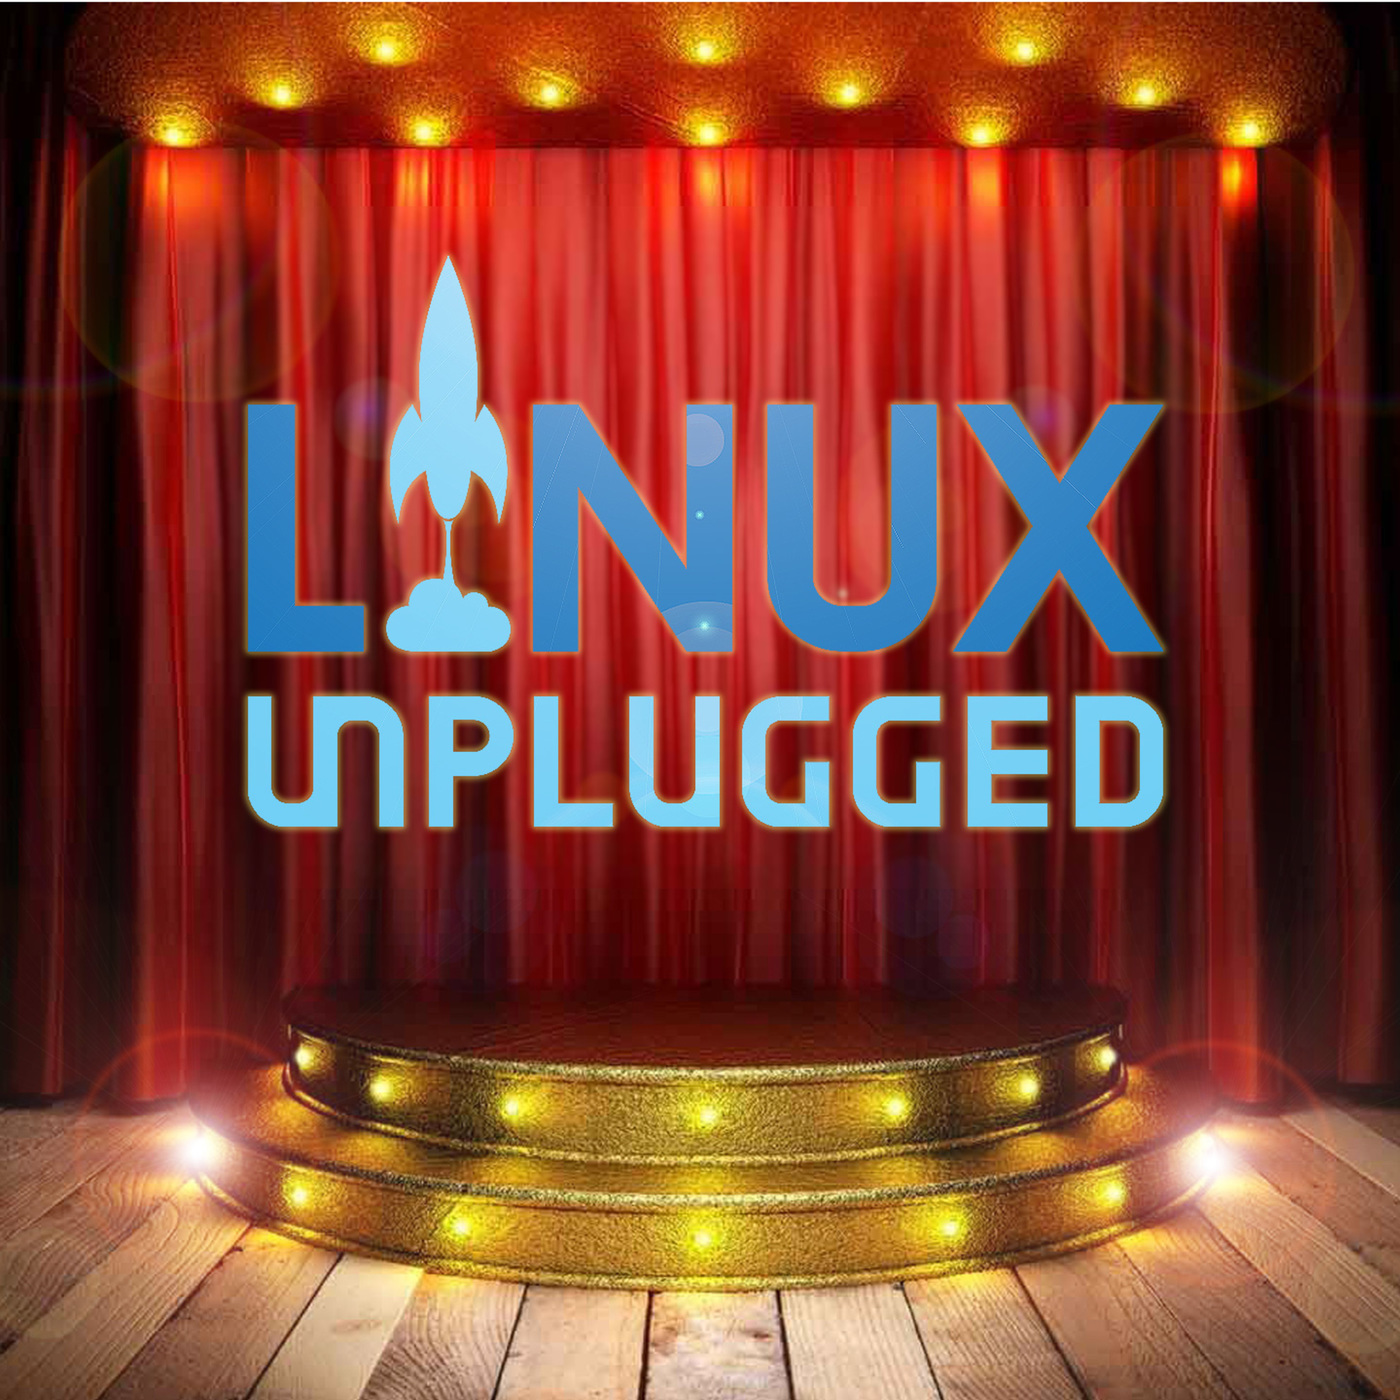 LIVE Unplugged 405: Distro in the Rough